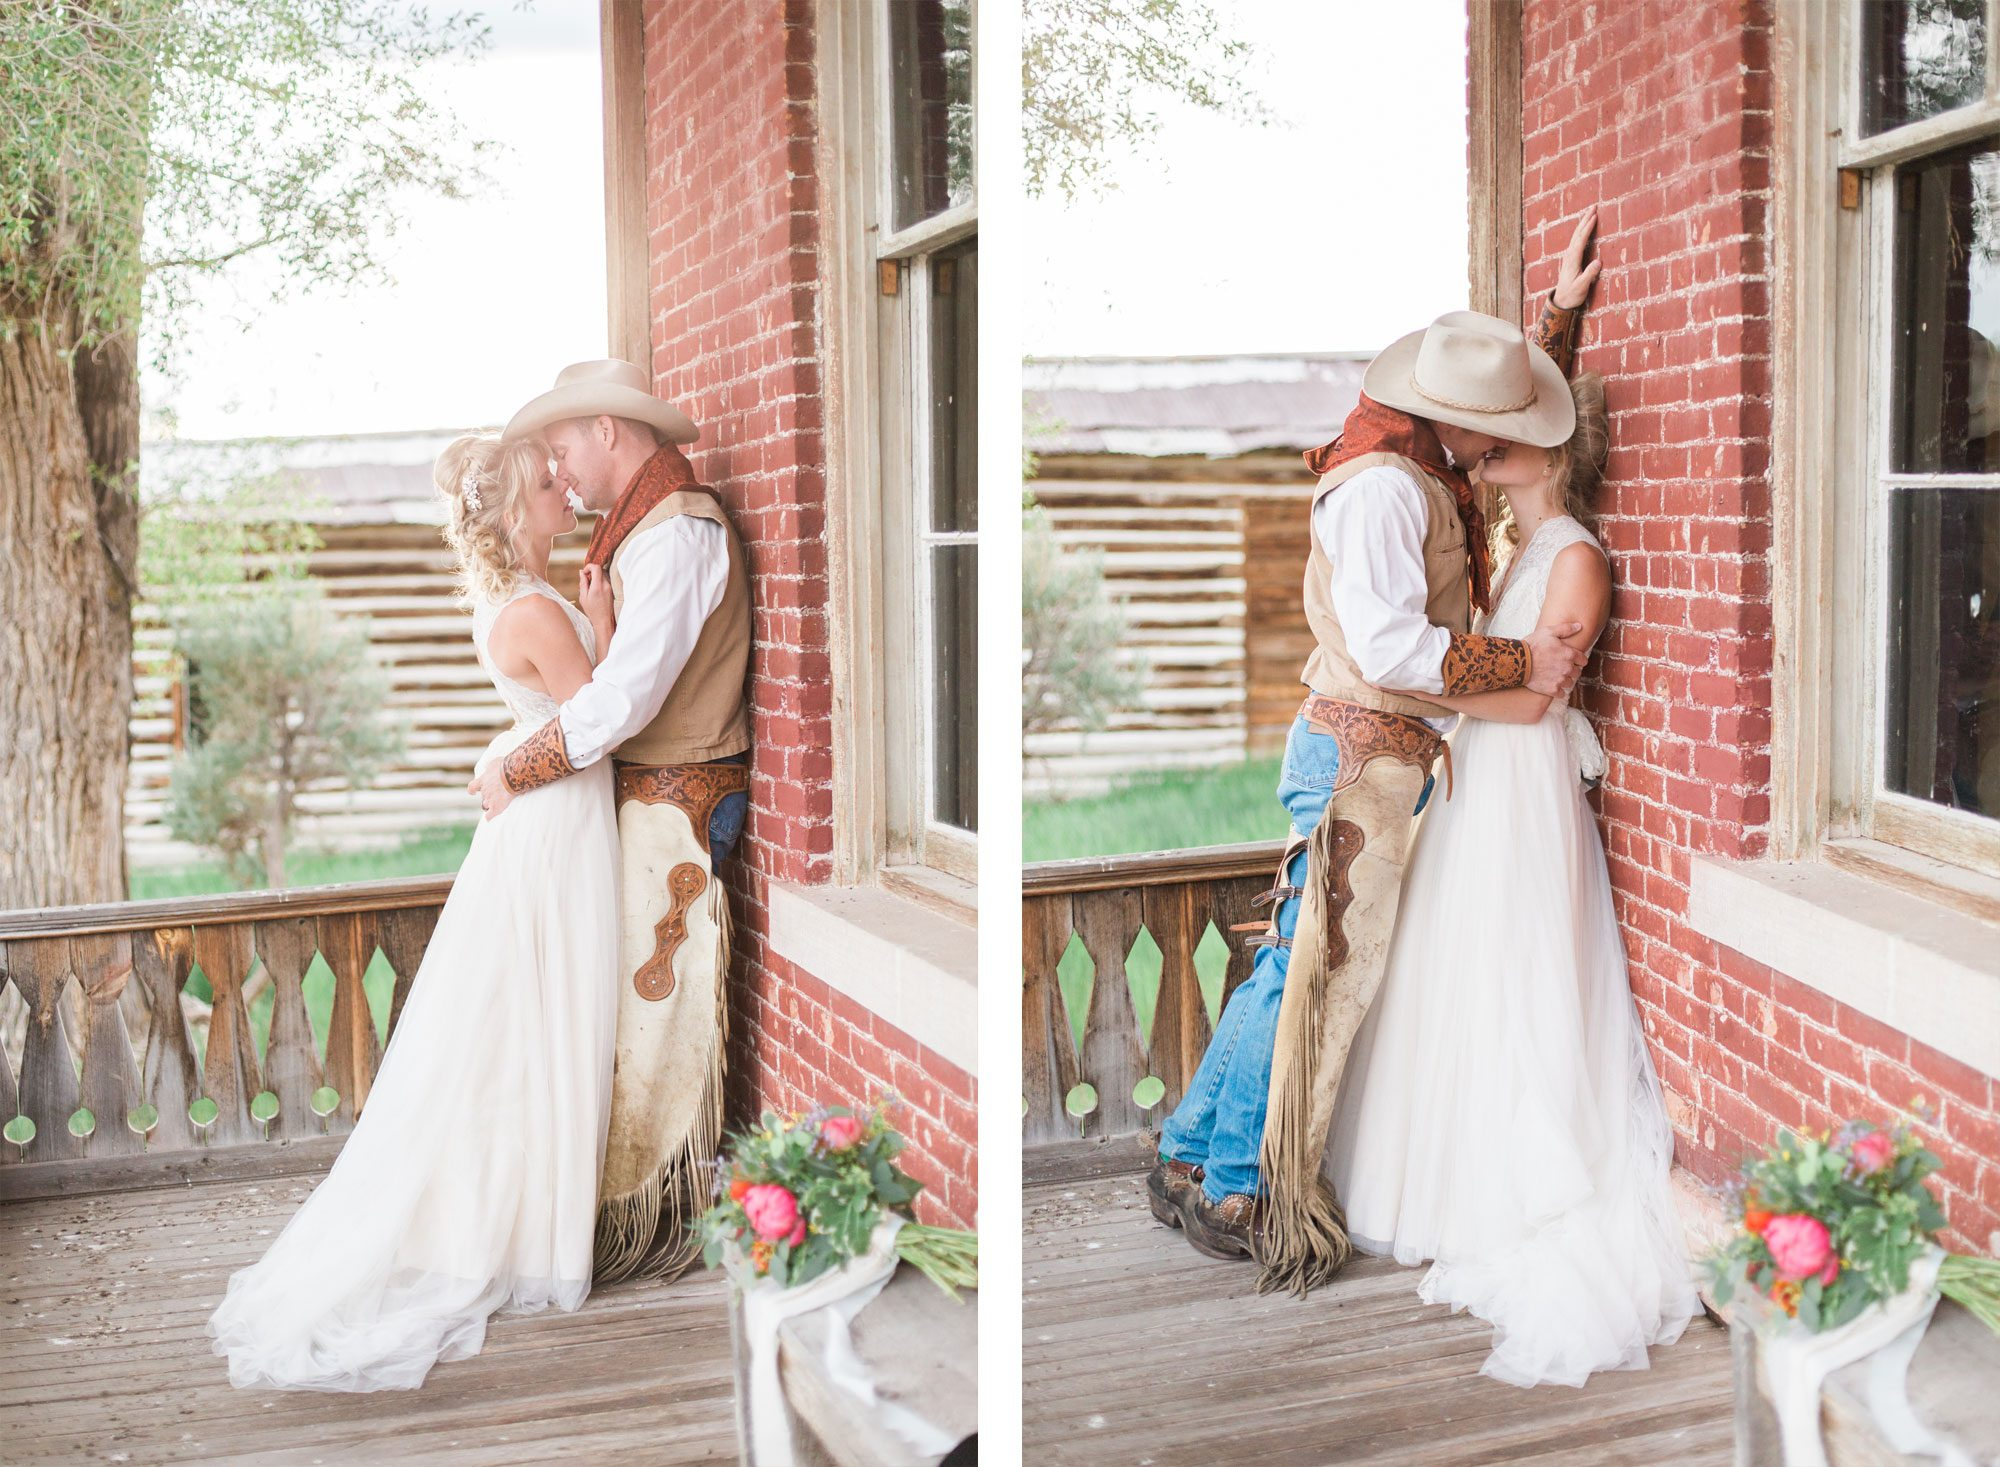 StellaKelsie0102 2000x1467 - Old West Wedding Ideas